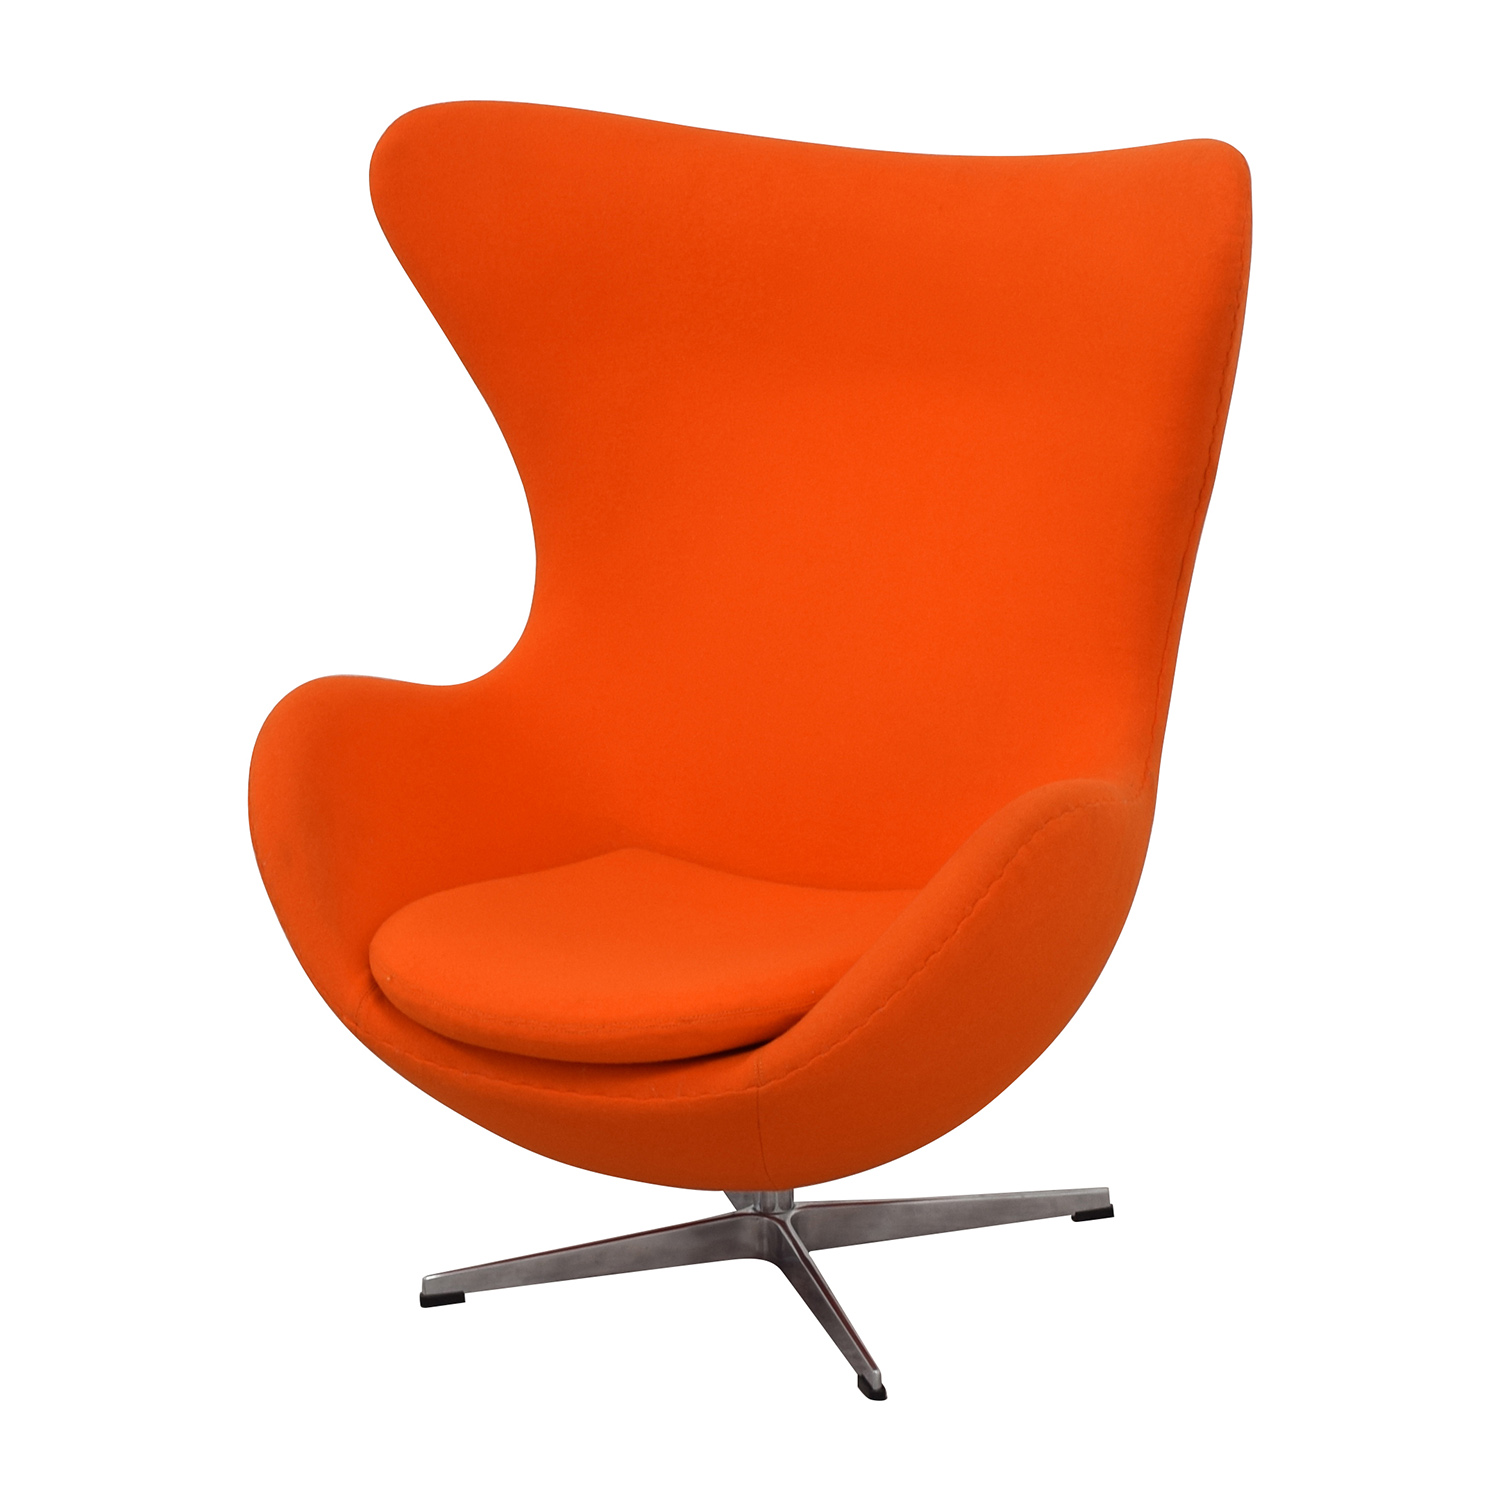 66% OFF Inmod INMod Jacobsen Orange Egg Chair Chairs